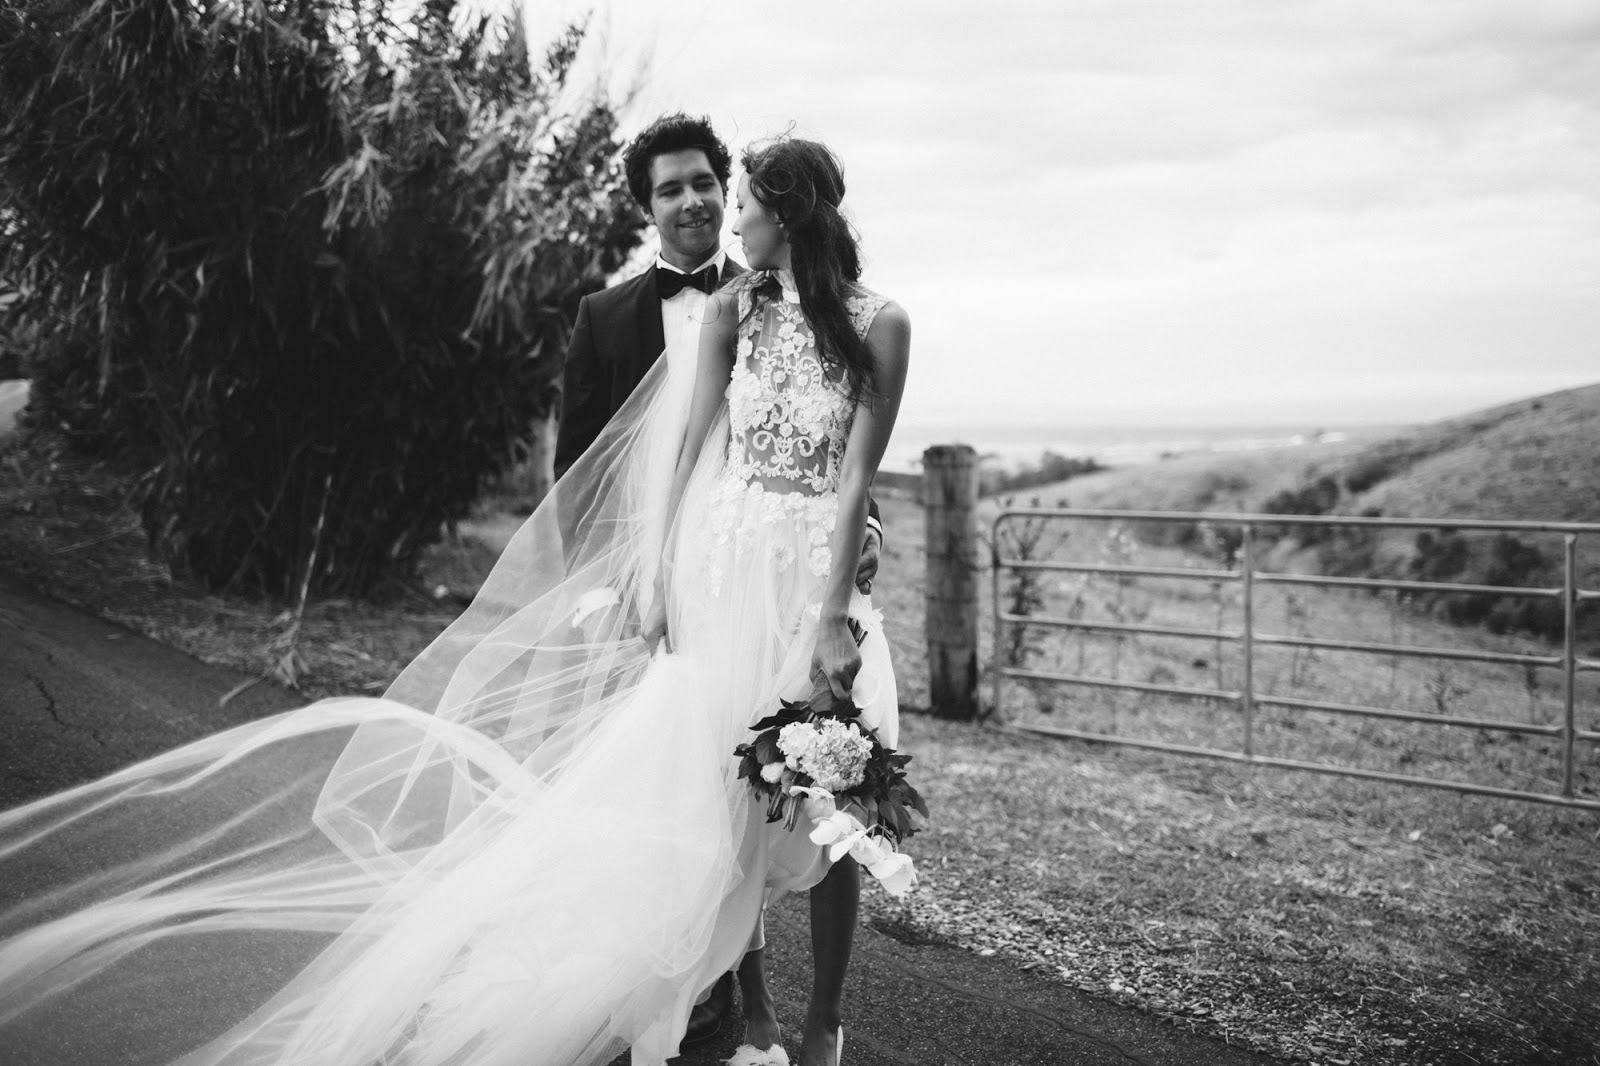 SYDNEY BRIDAL COUTURE INTERVIEW WEDDING DRESS DESIGNER AUSTRALIA